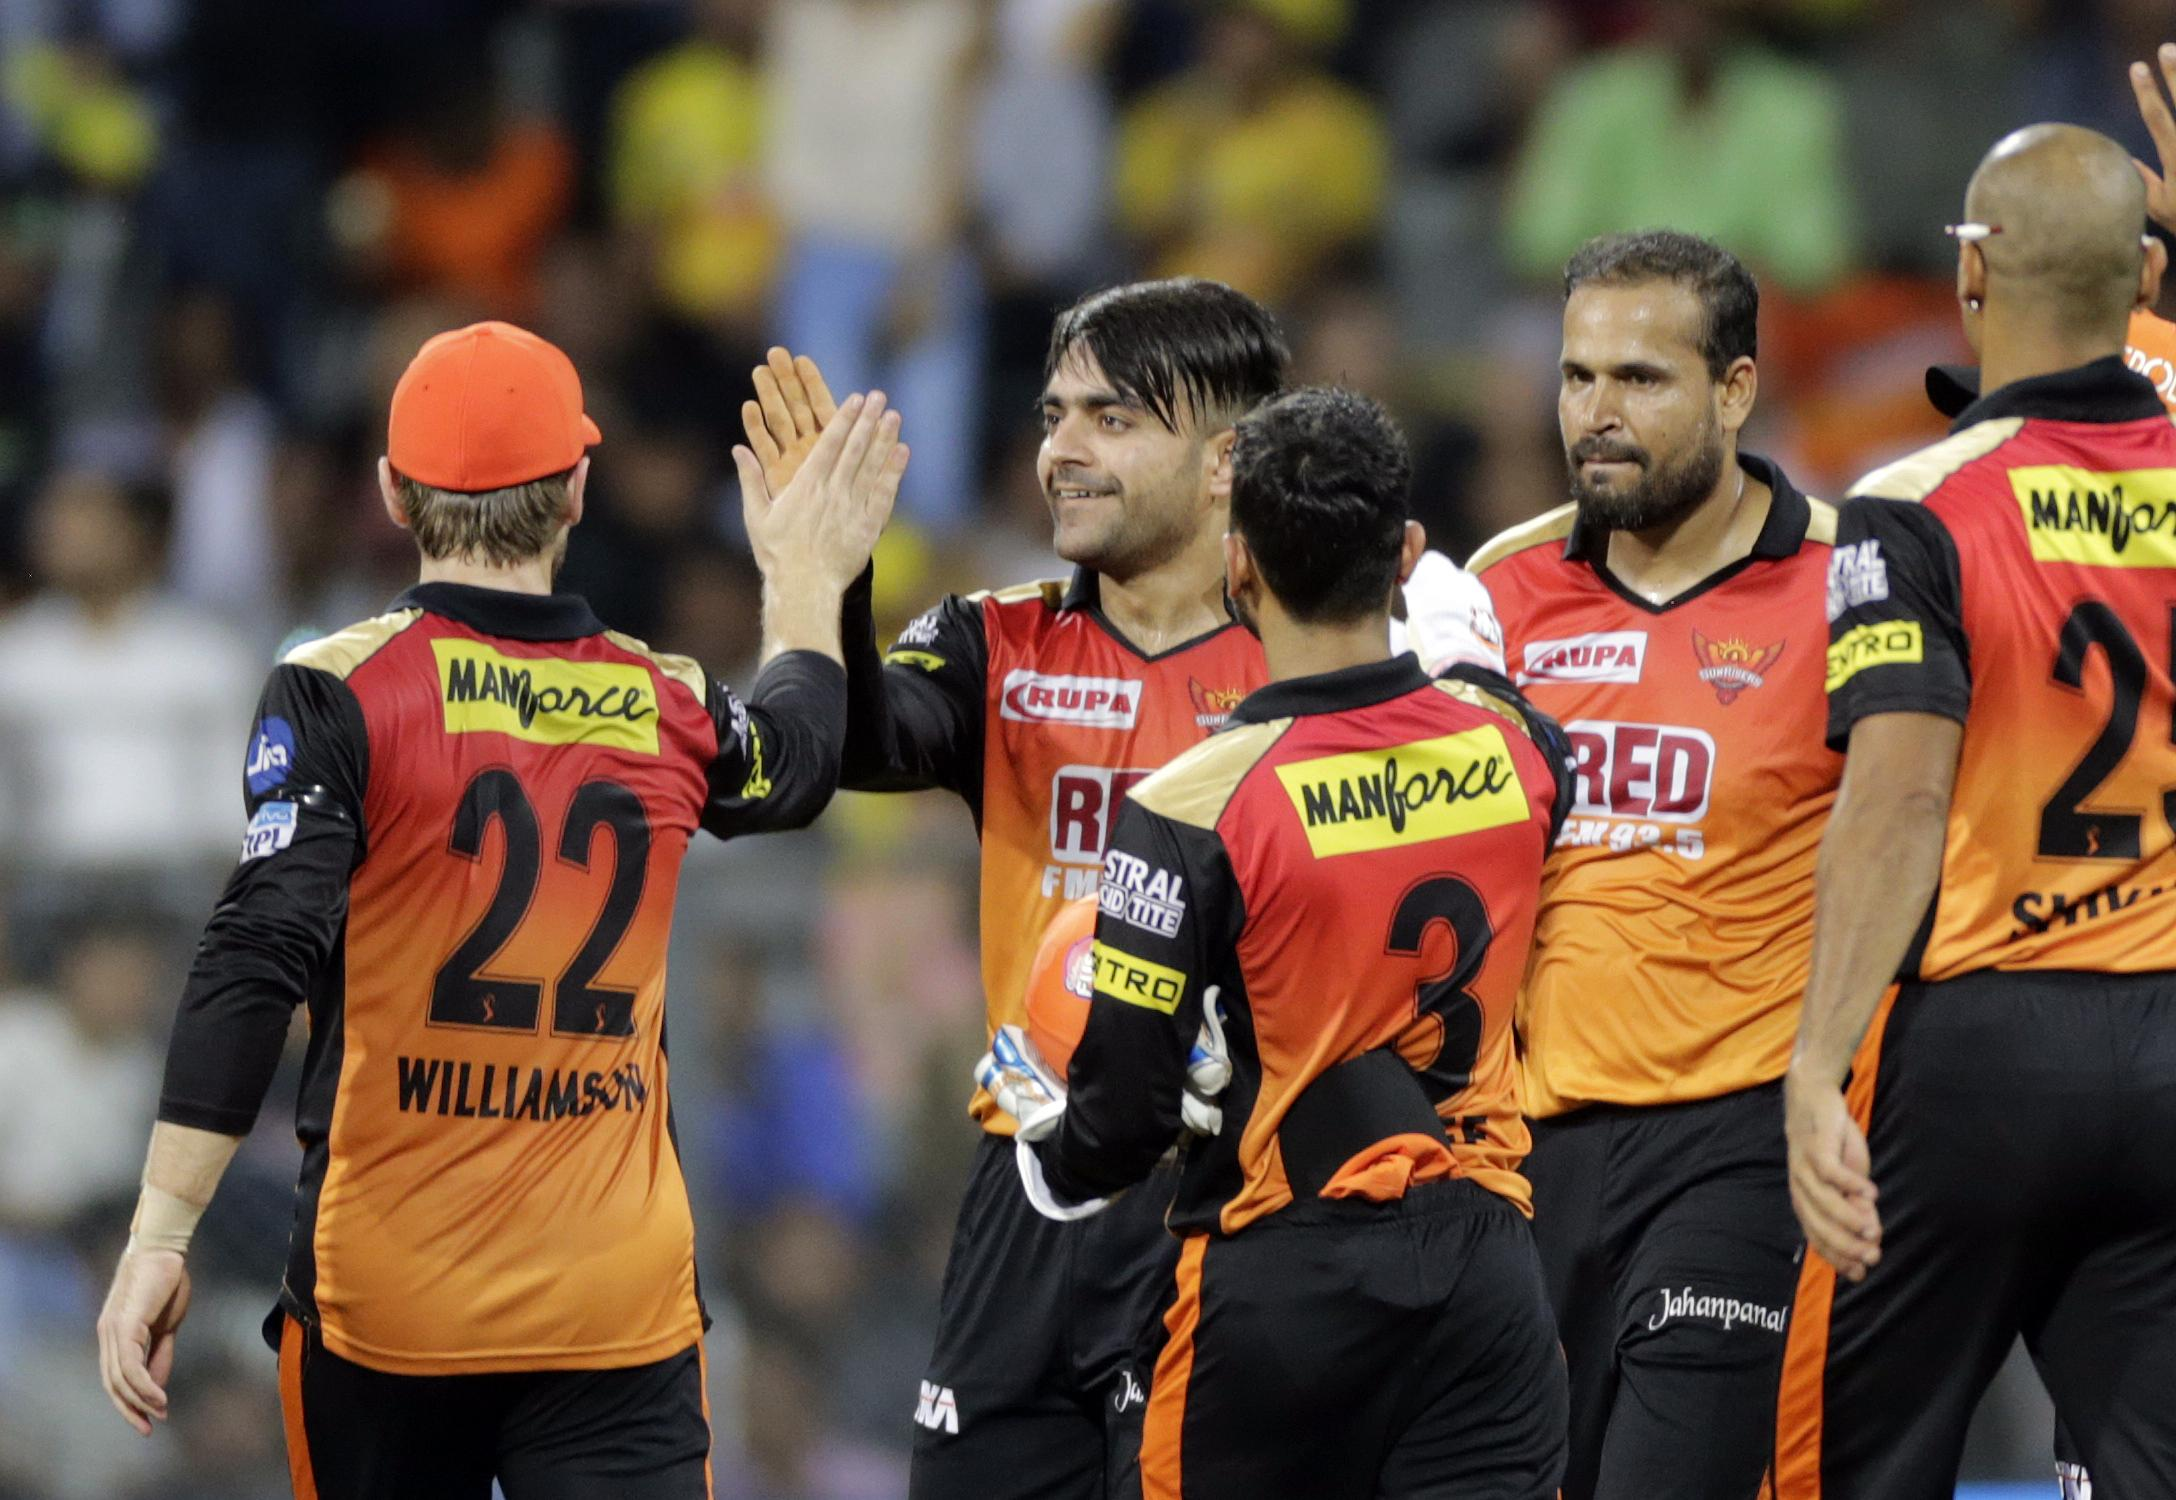 Sunrisers Hyderabad hope to take on Chennai Super Kings in the IPL final